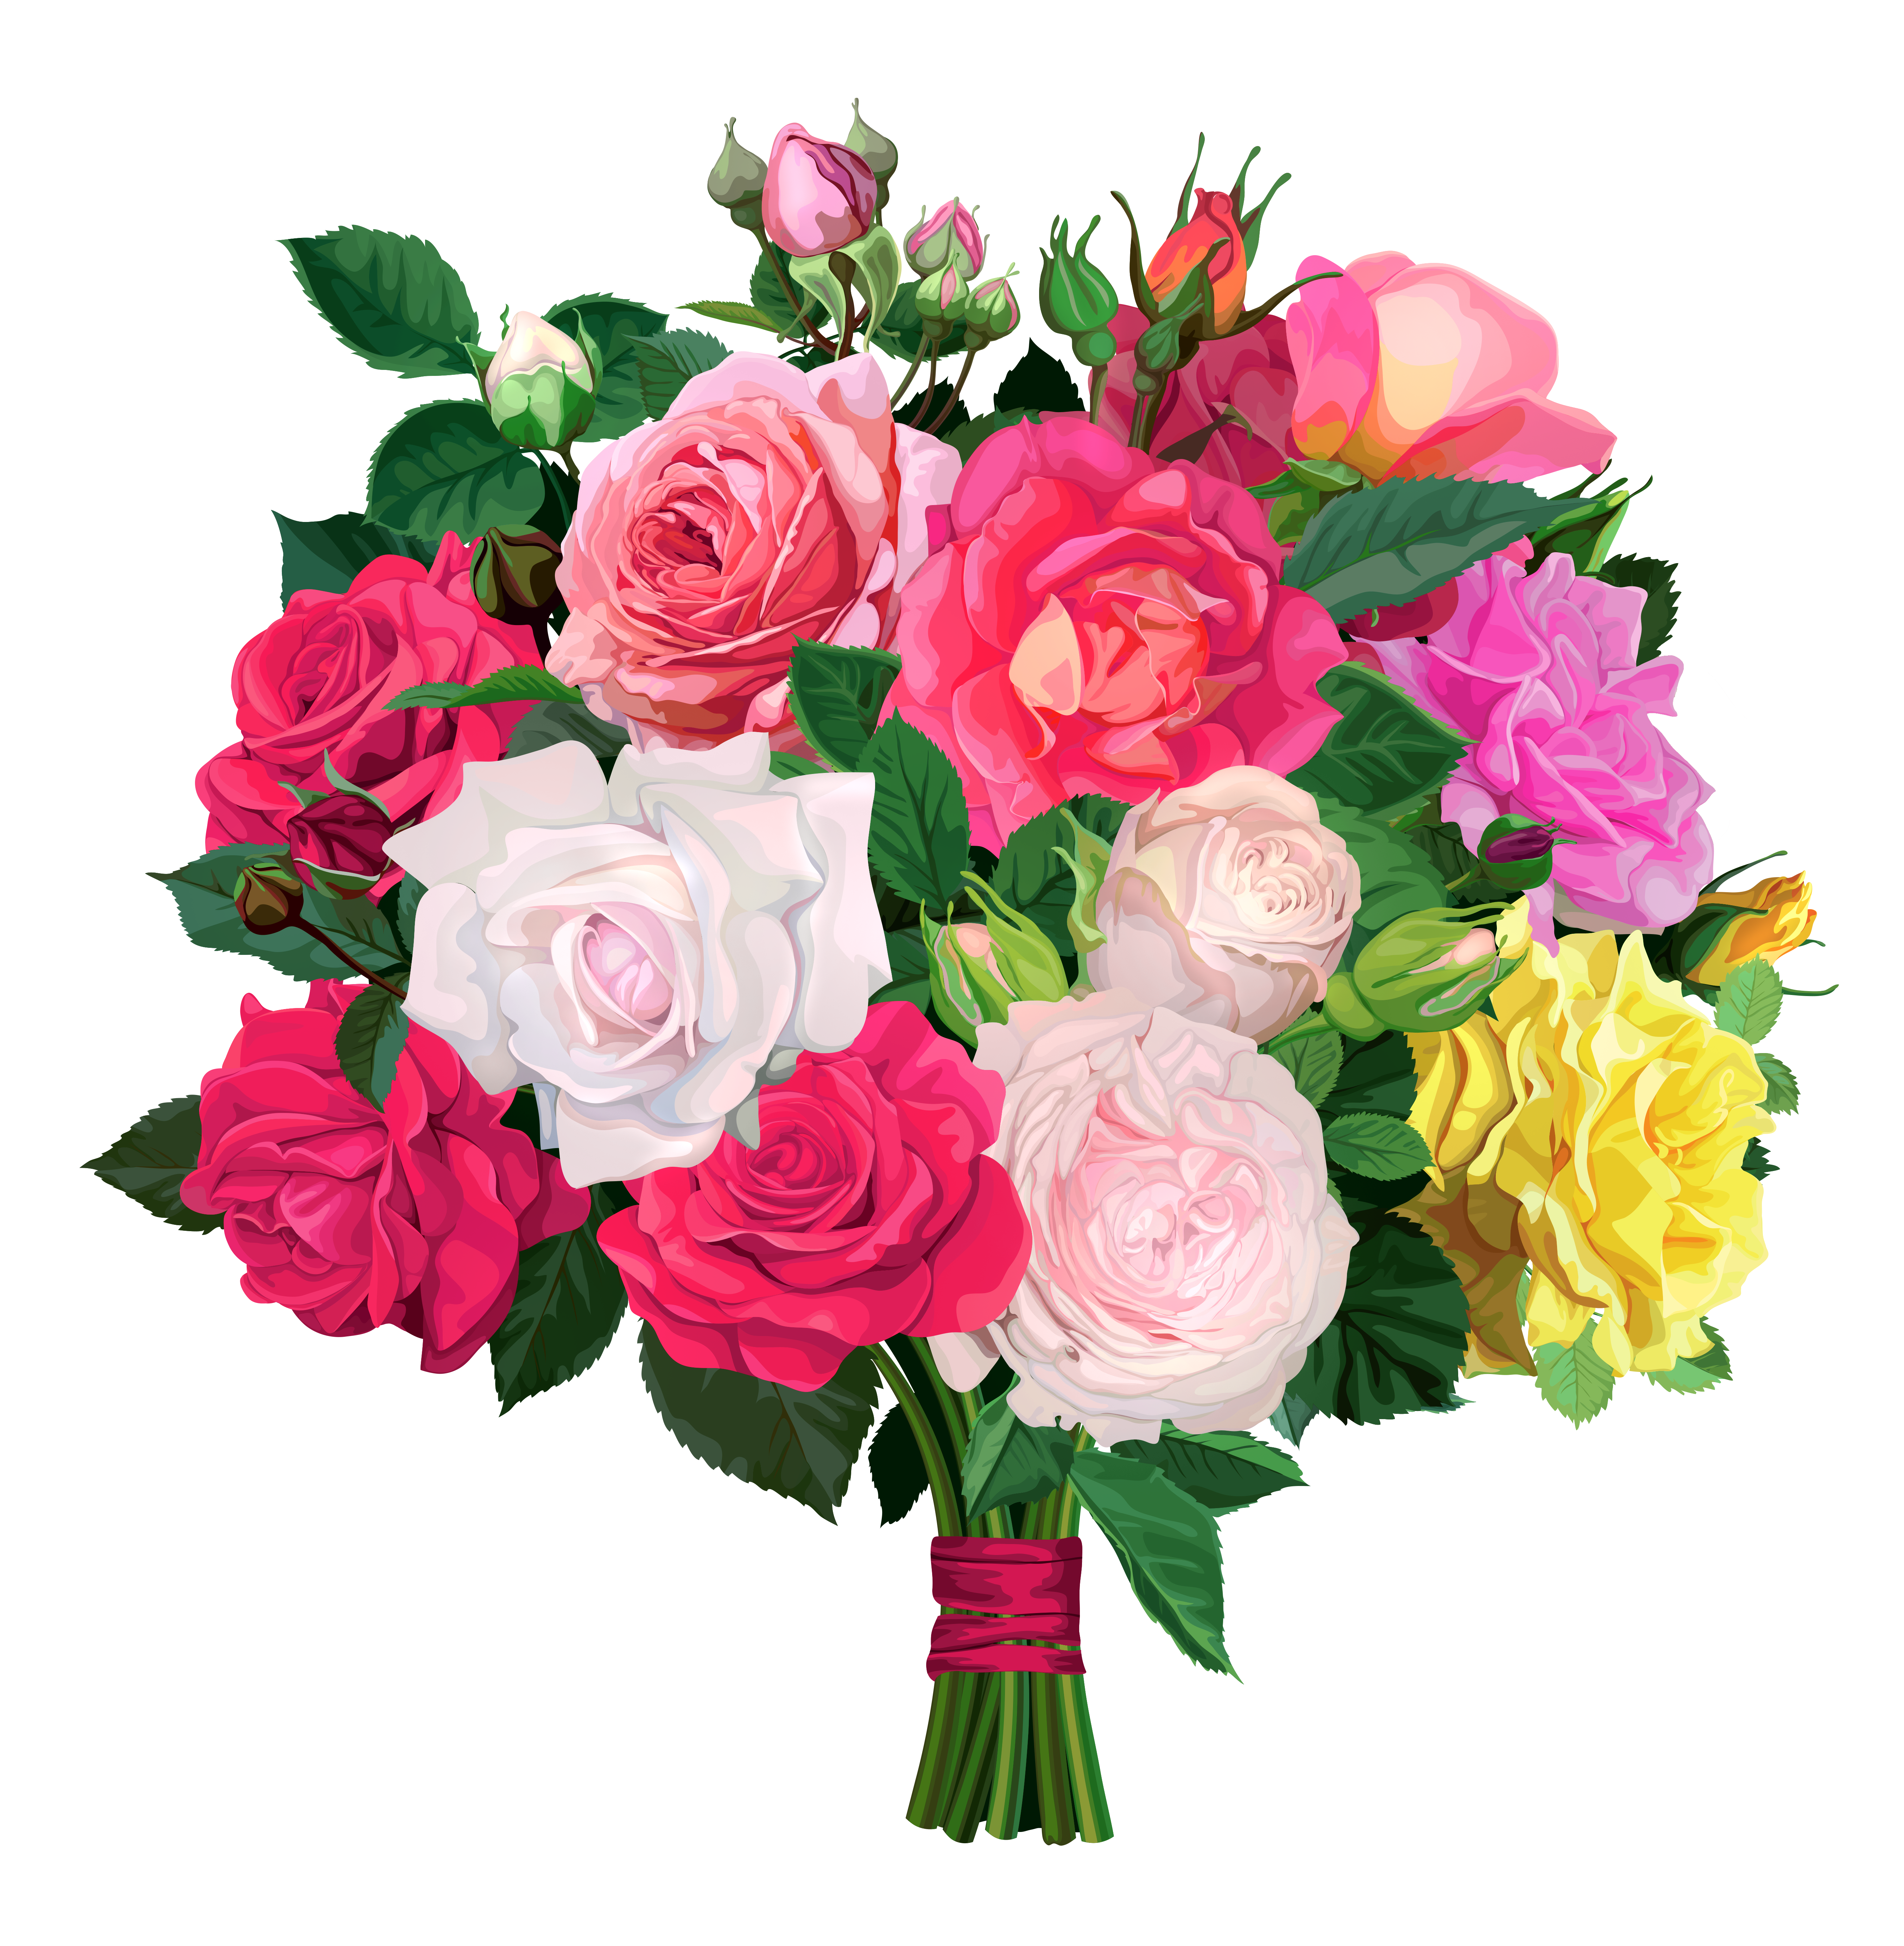 Free flora bouquet png coral navy blue. Rose transparent clipart gallery